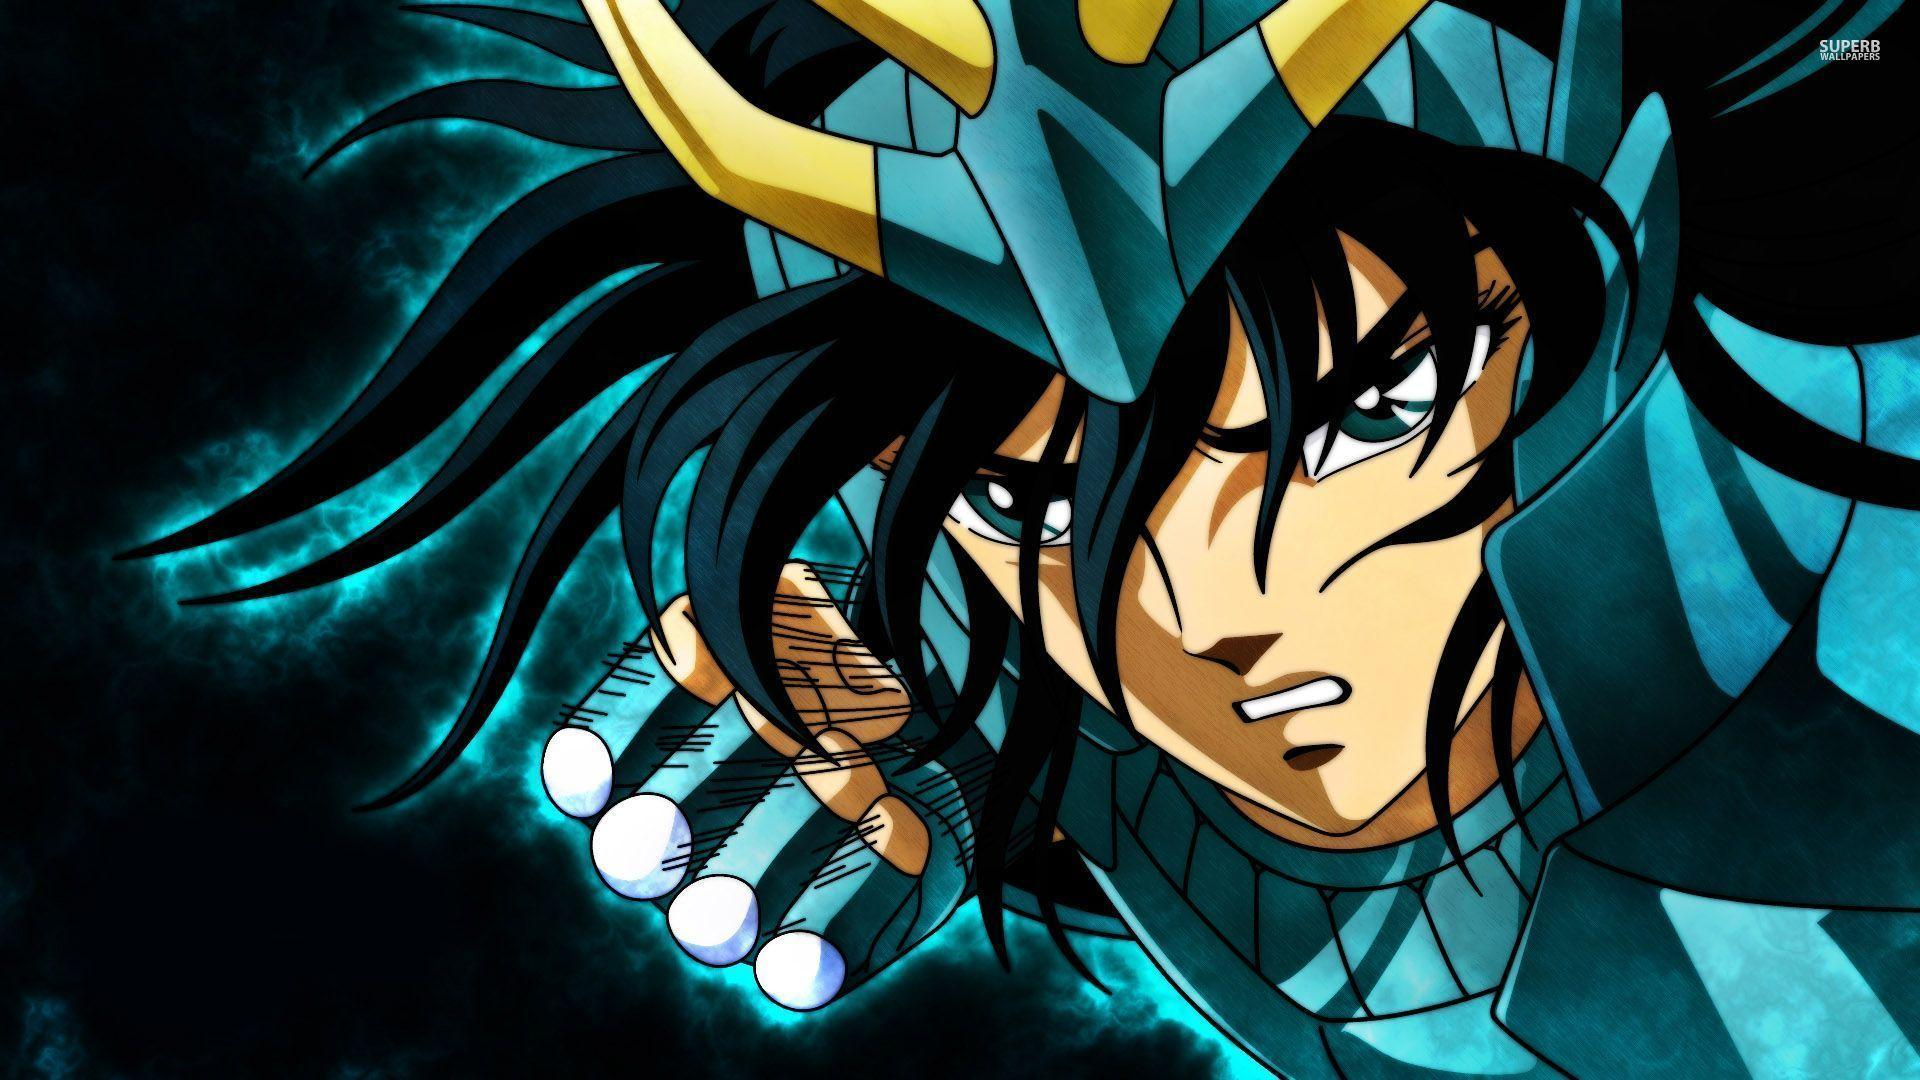 Saint Seiya Wallpapers Wallpaper Cave